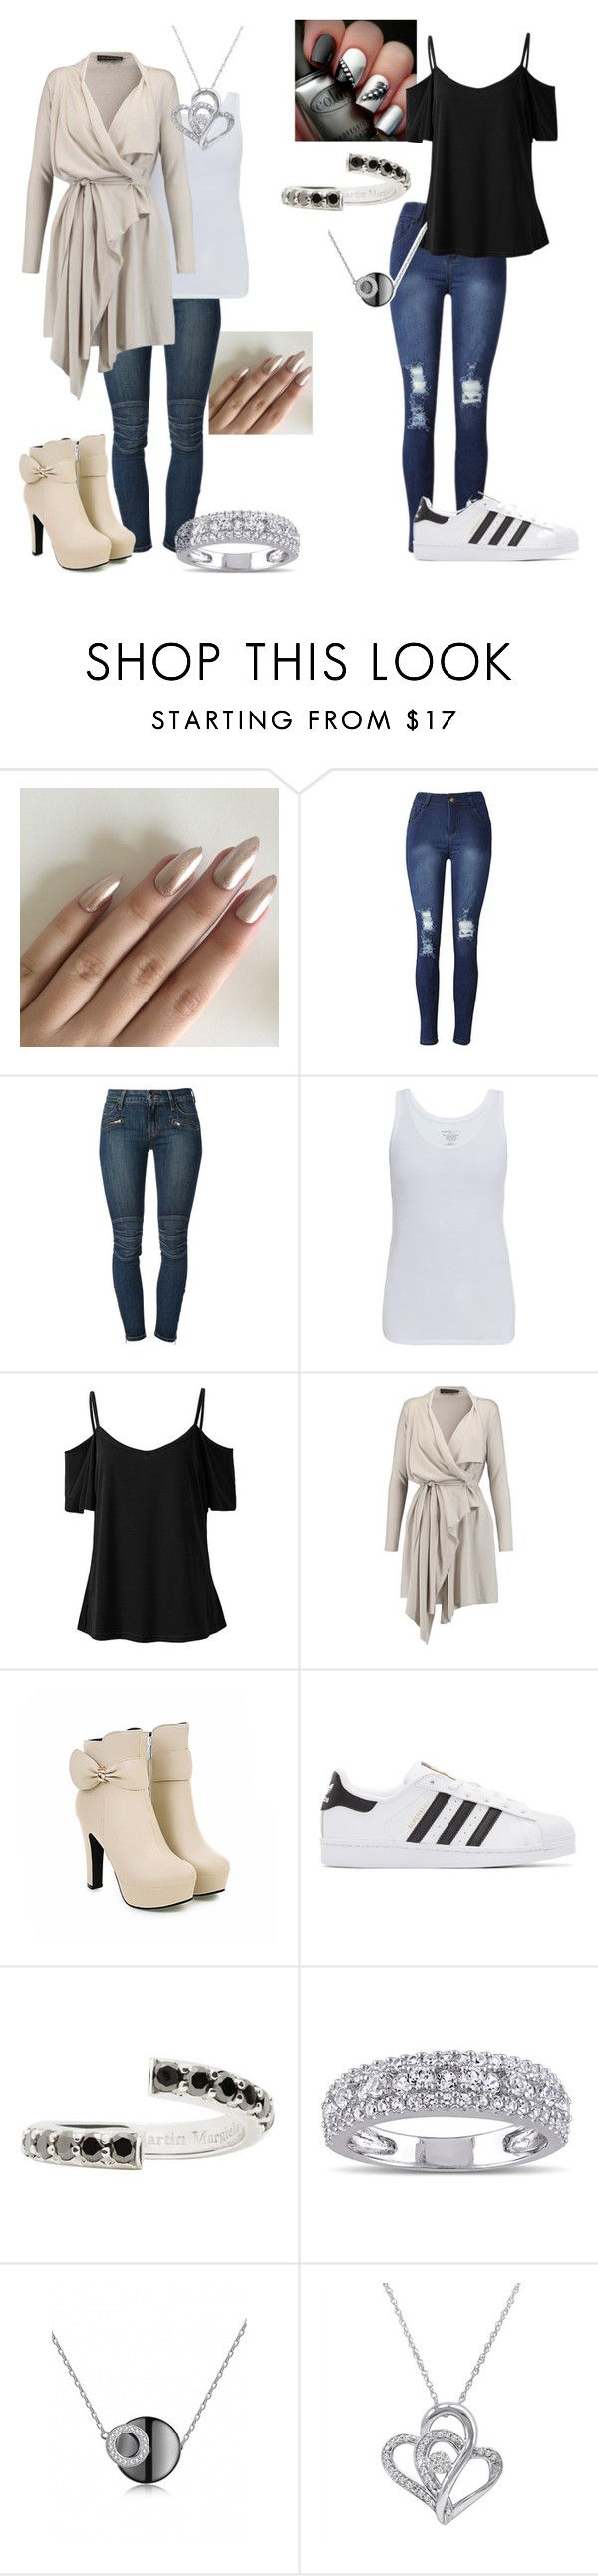 """""""Dressy/casual"""" by dpclma ❤ liked on Polyvore featuring Koral, Majestic, Maria Grachvogel, adidas Originals, Maison Margiela, Miadora and Amanda Rose Collection"""